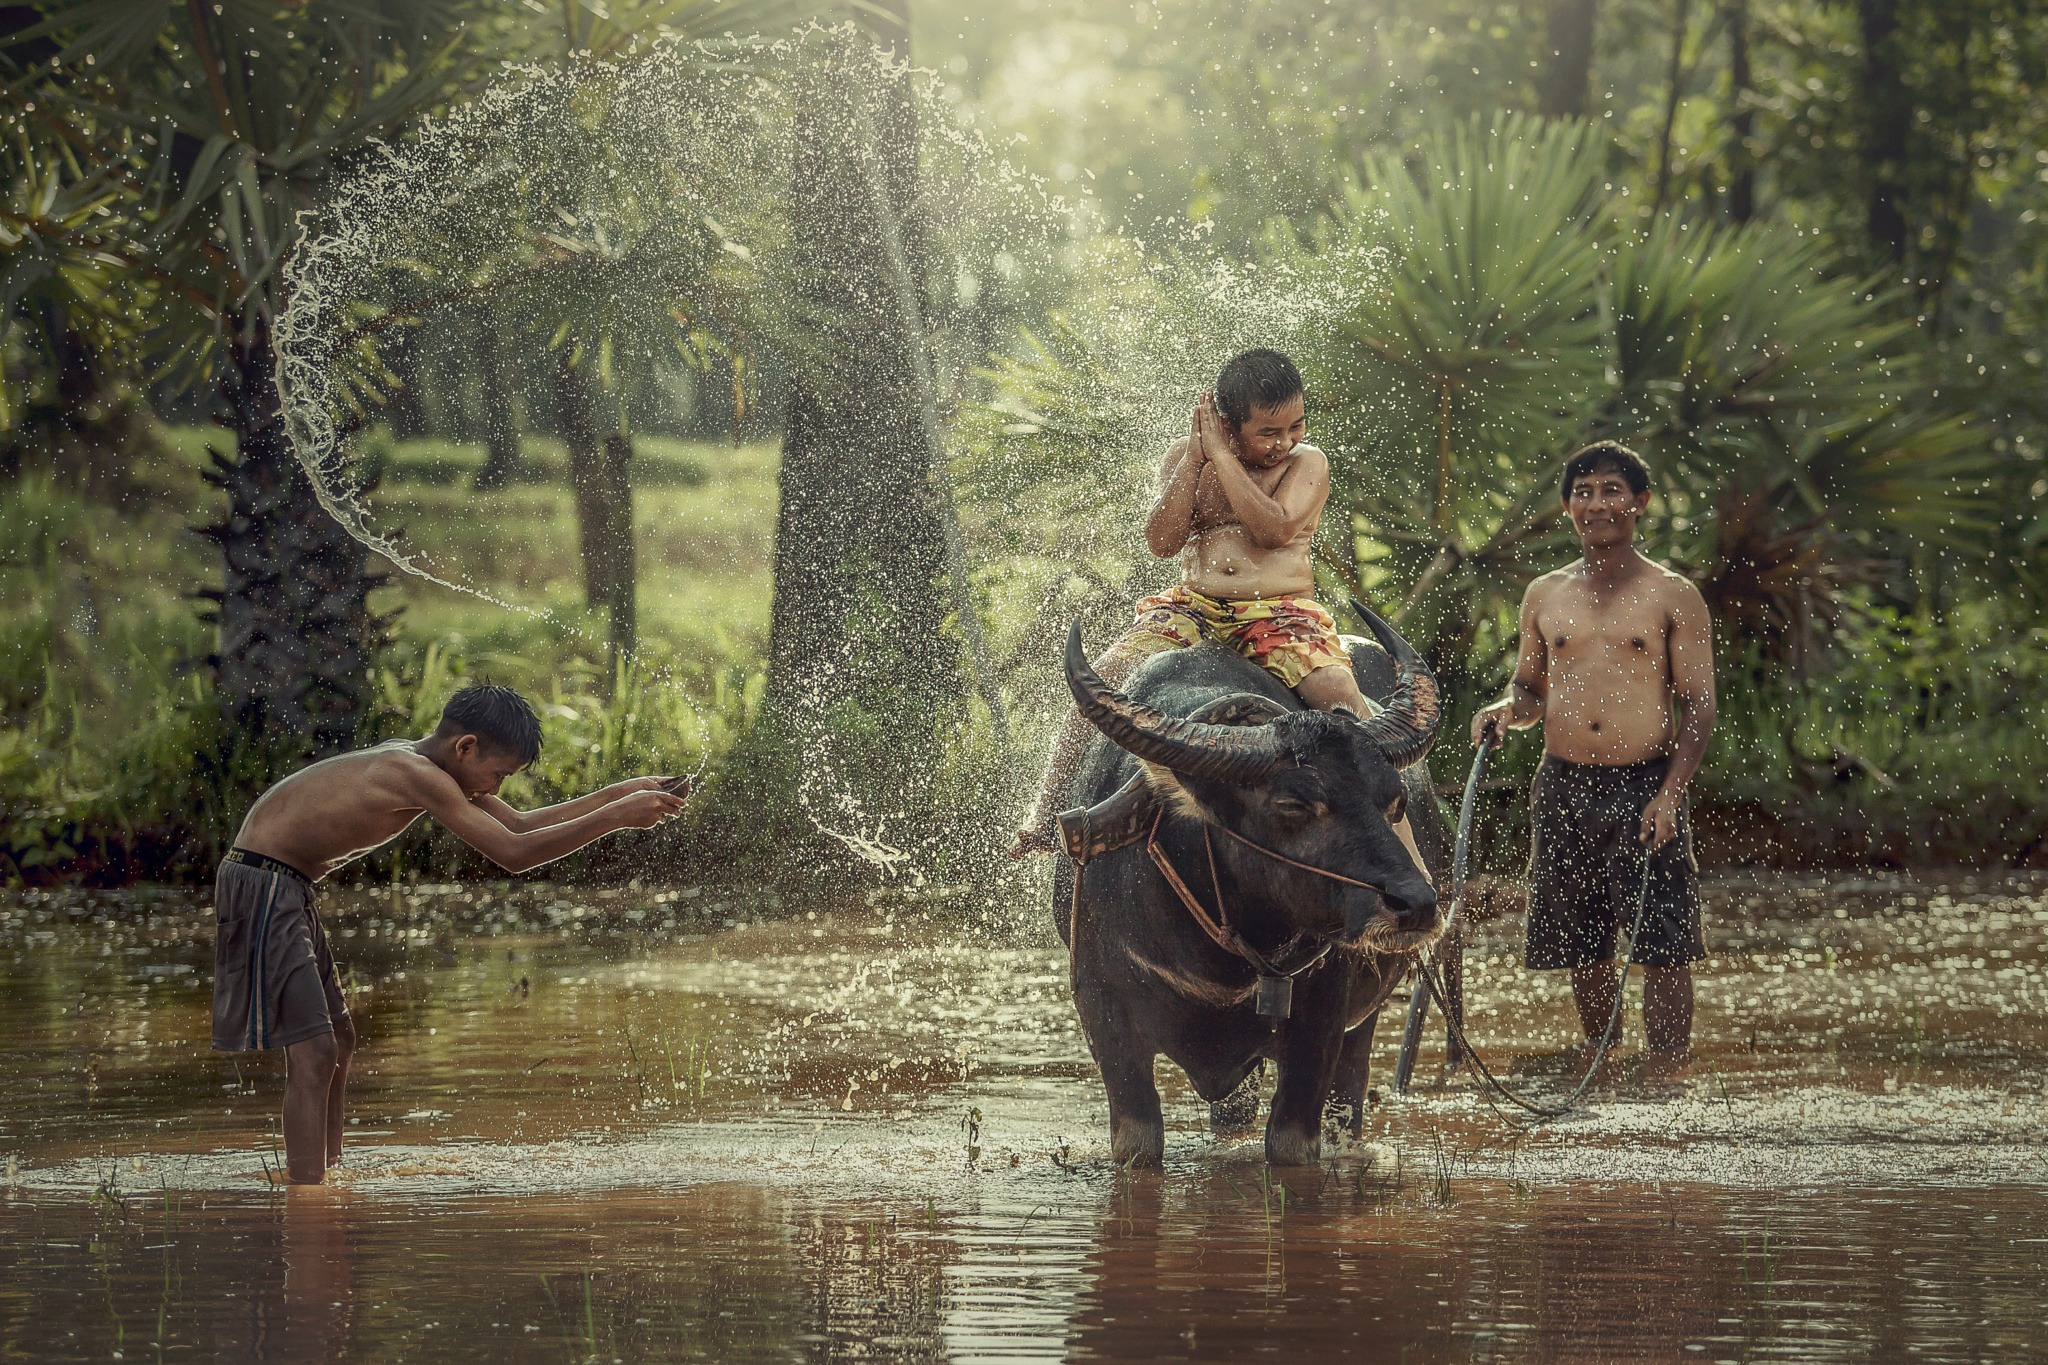 Happy boy riding water buffalo.